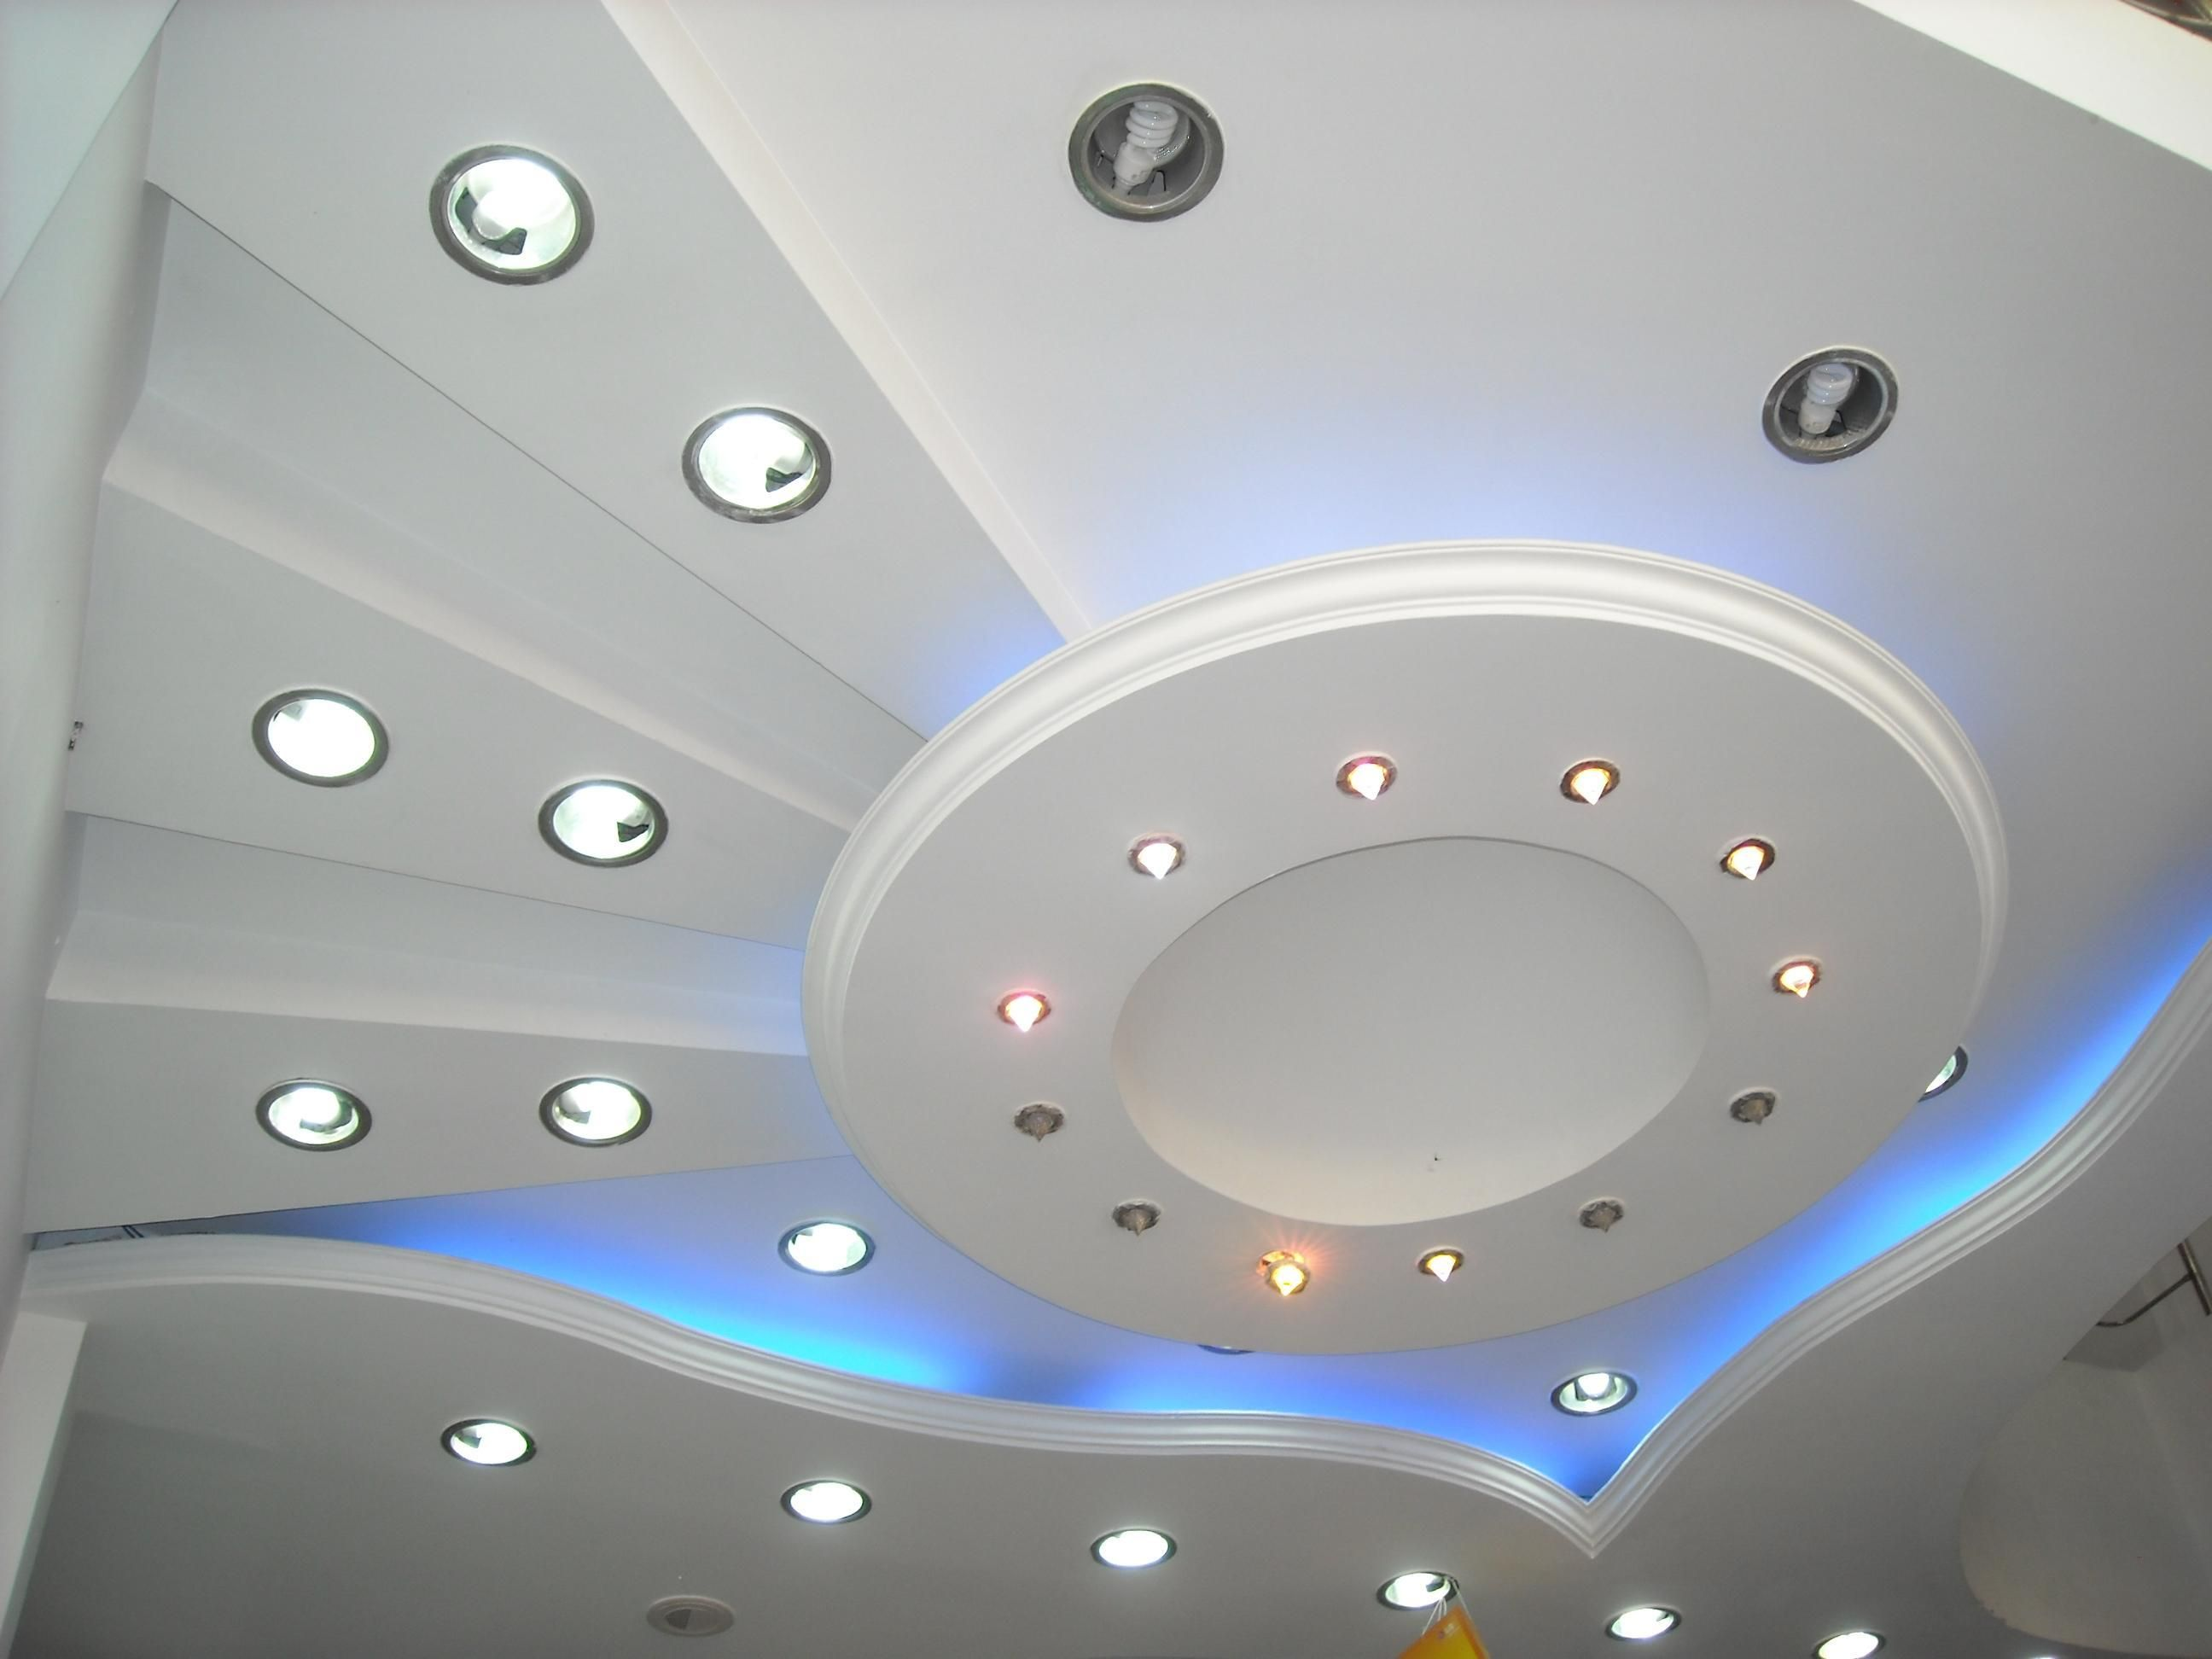 Ceiling Design Ideas ceiling design ideas screenshot Kitchen Design Why You Need Fall Ceiling Babber 26 Latest Ceiling Design In India